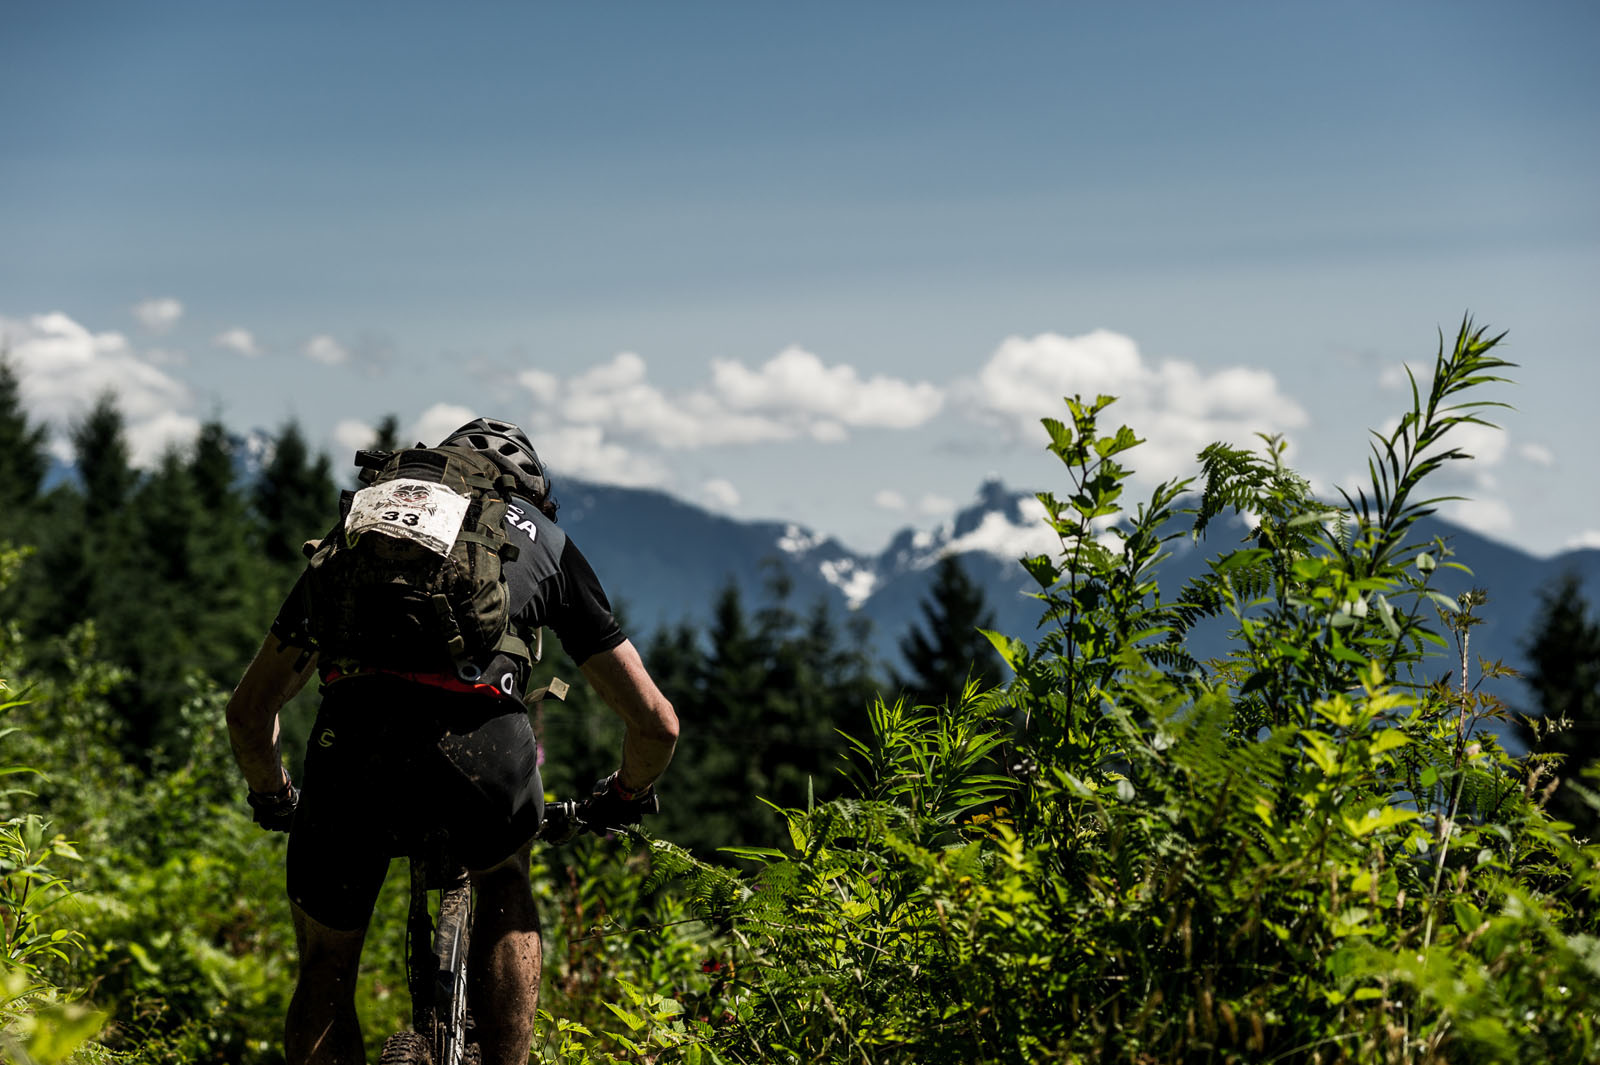 Riders take in a view of the Coastal Mountains between singletrack shreds.